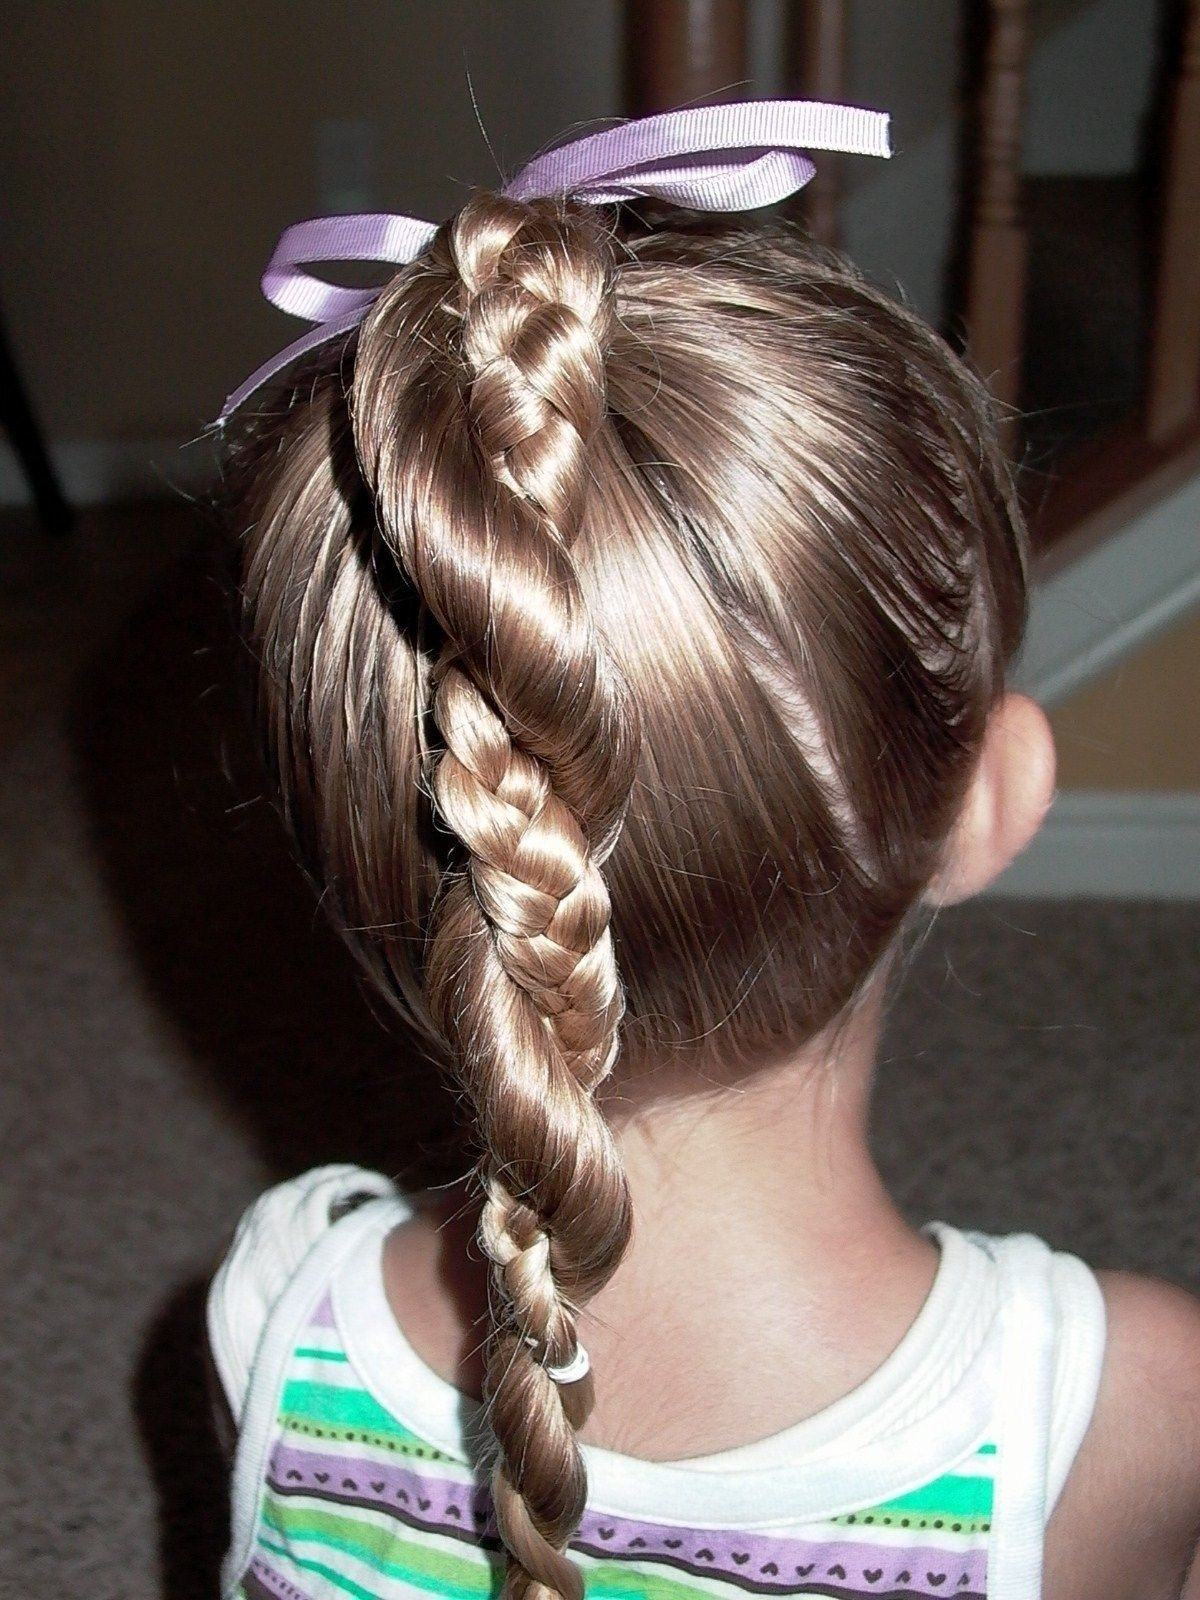 10 coolest hairstyles for 7 year old girls tutorial | sydnee